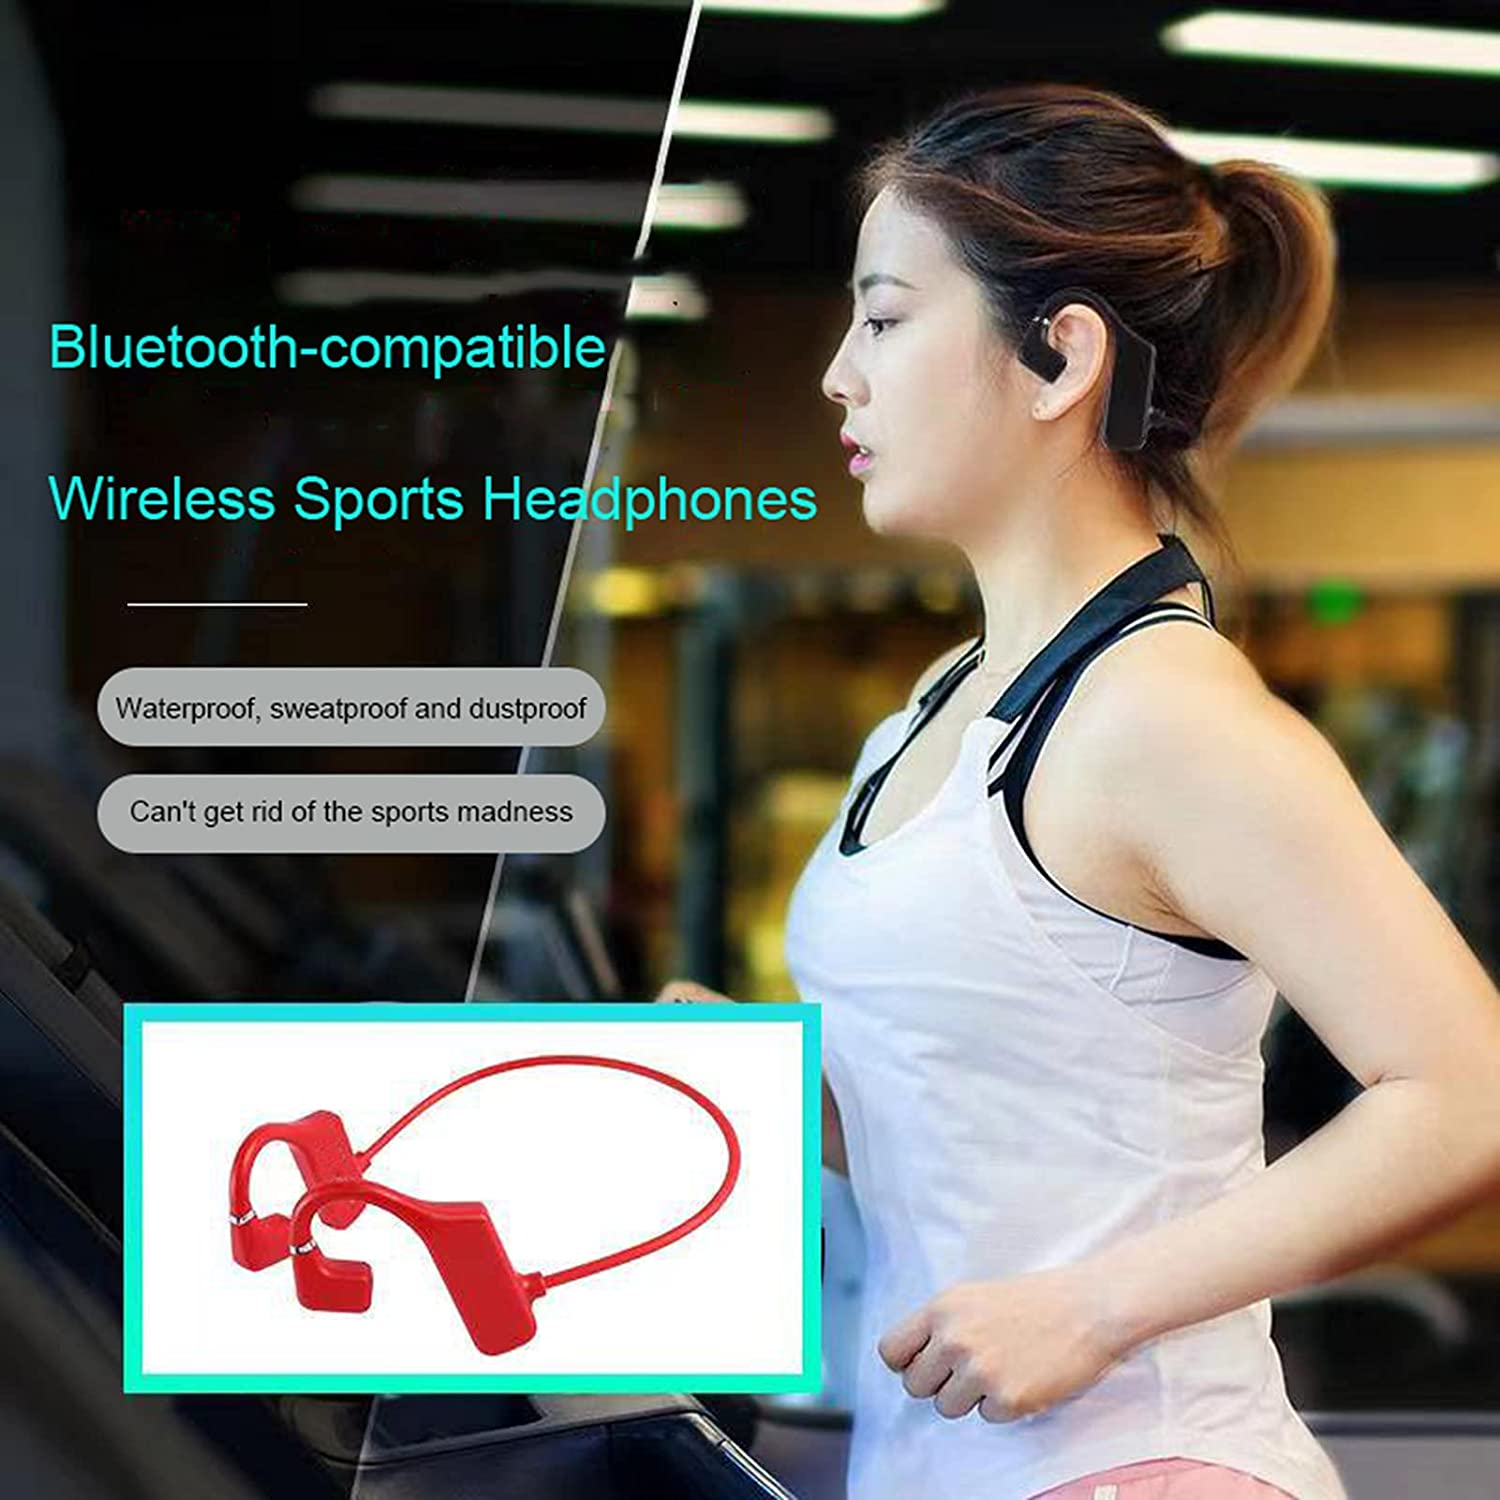 OCUhome Bone Conduction Headphones, Open Ear Headphones, G1 Bluetooth 5.1 Earphones IPX6 Waterproof 3D Surround Sound ABS Practical Wireless Bone Conduction Headsets for Sports Red